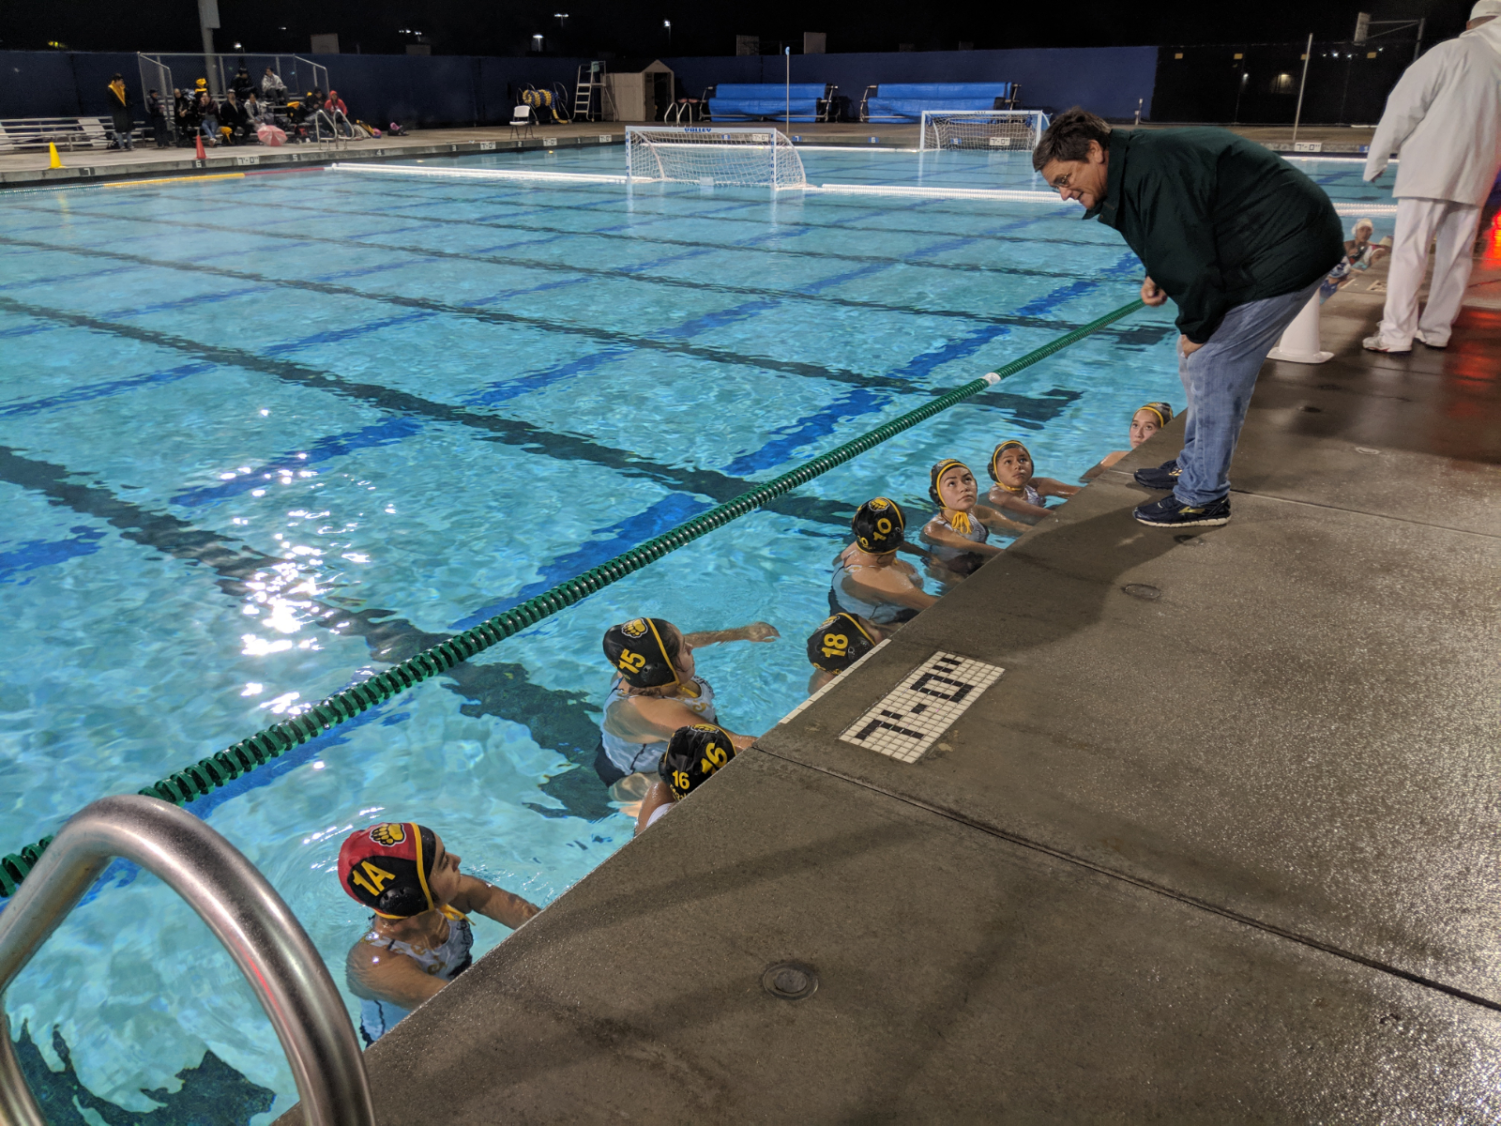 Coach John Wright gives his game plan during a game against Western High School. Varsity girls lost to Western 9-2. Photo taken at Valley High School's pool on Jan. 30, 2019.